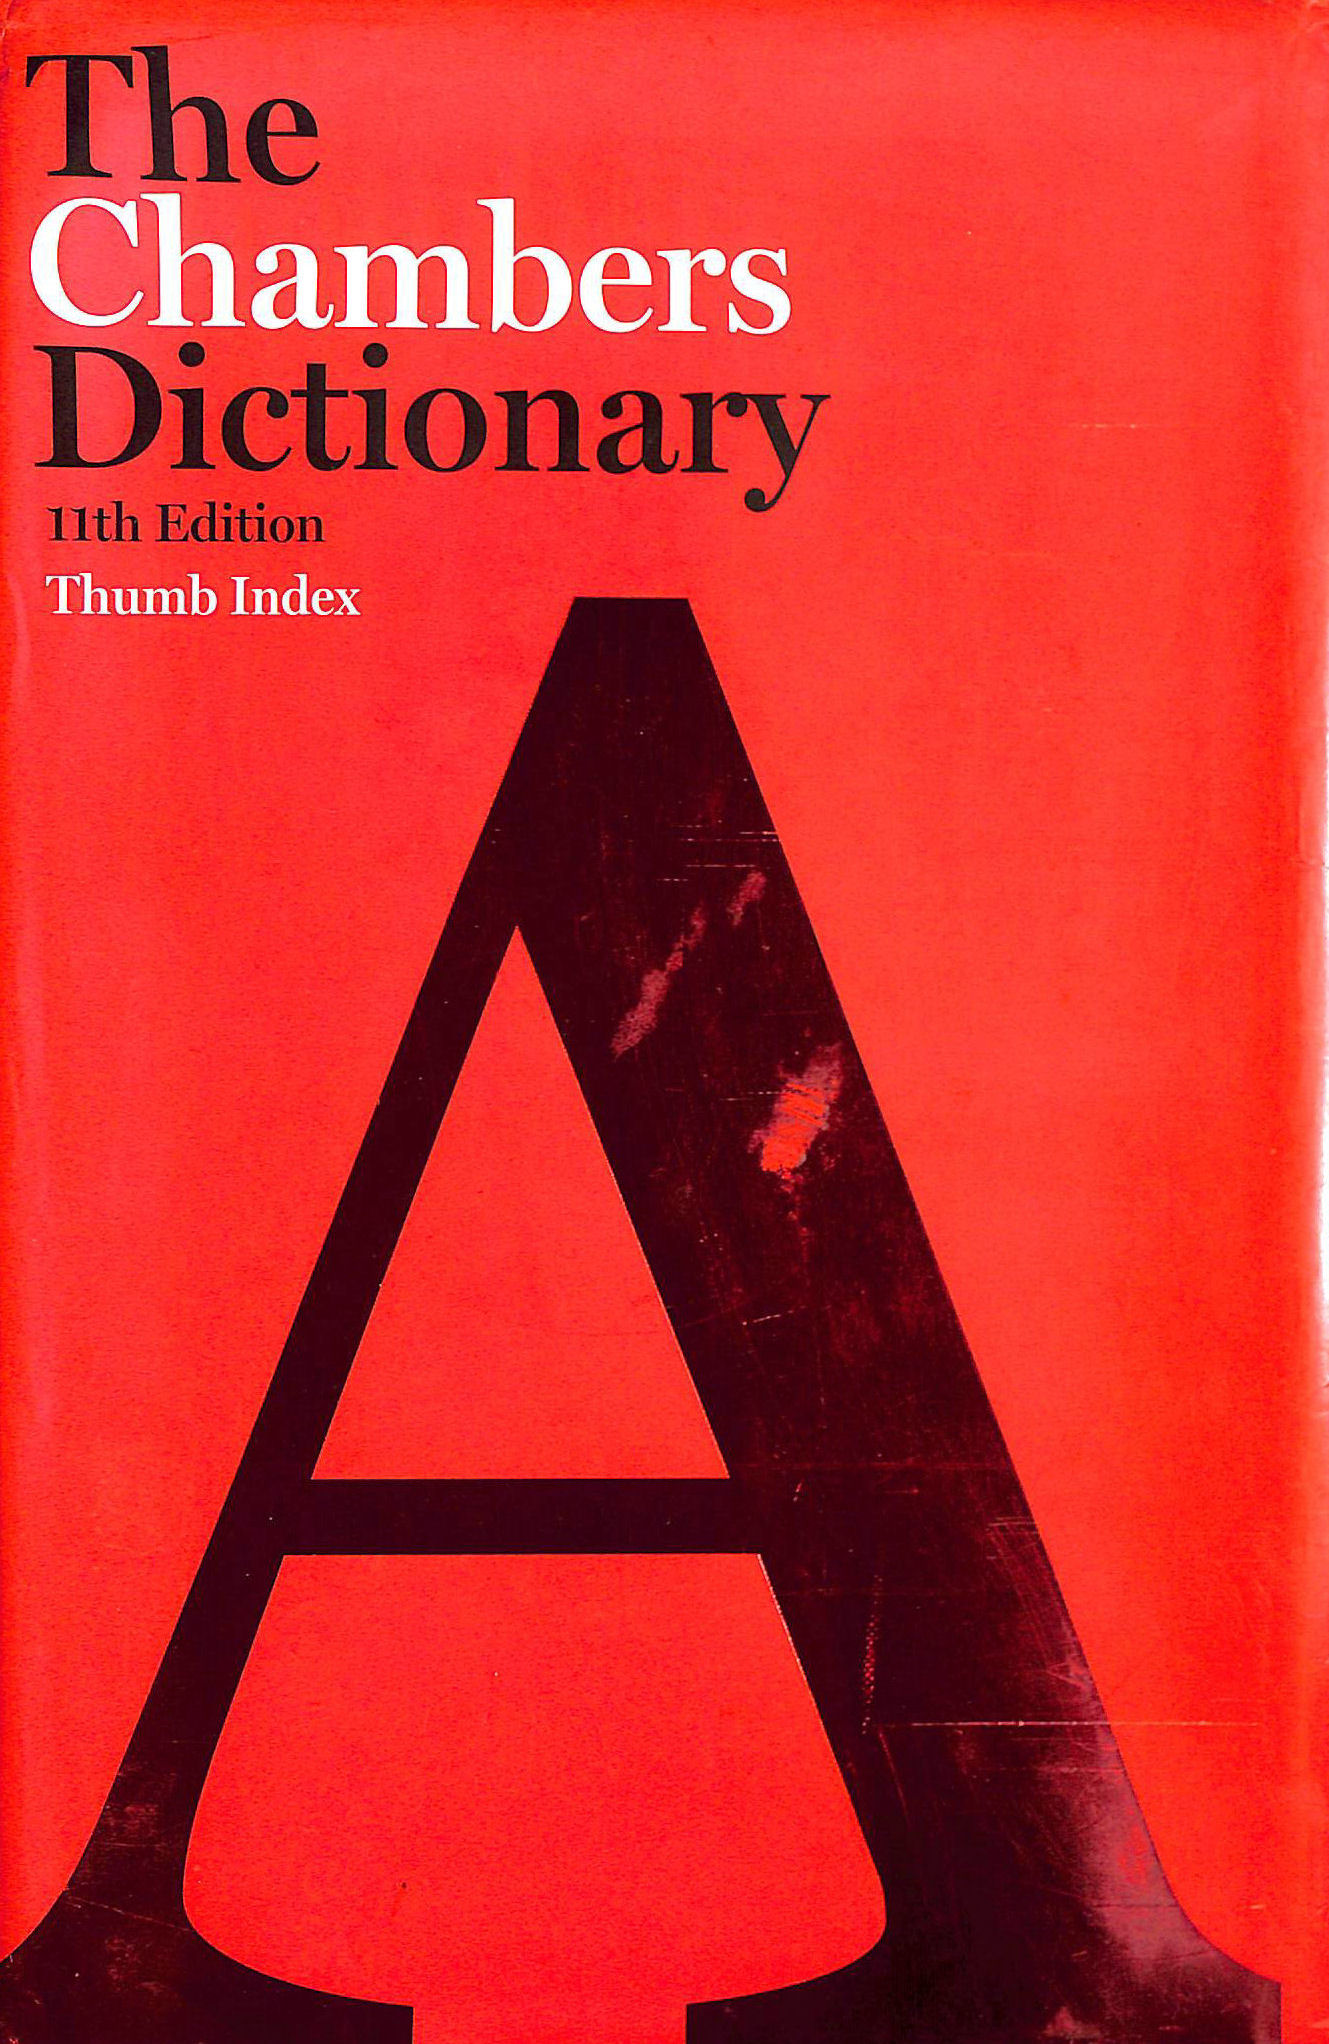 Image for The Chambers Dictionary Thumb Index, 11th edition